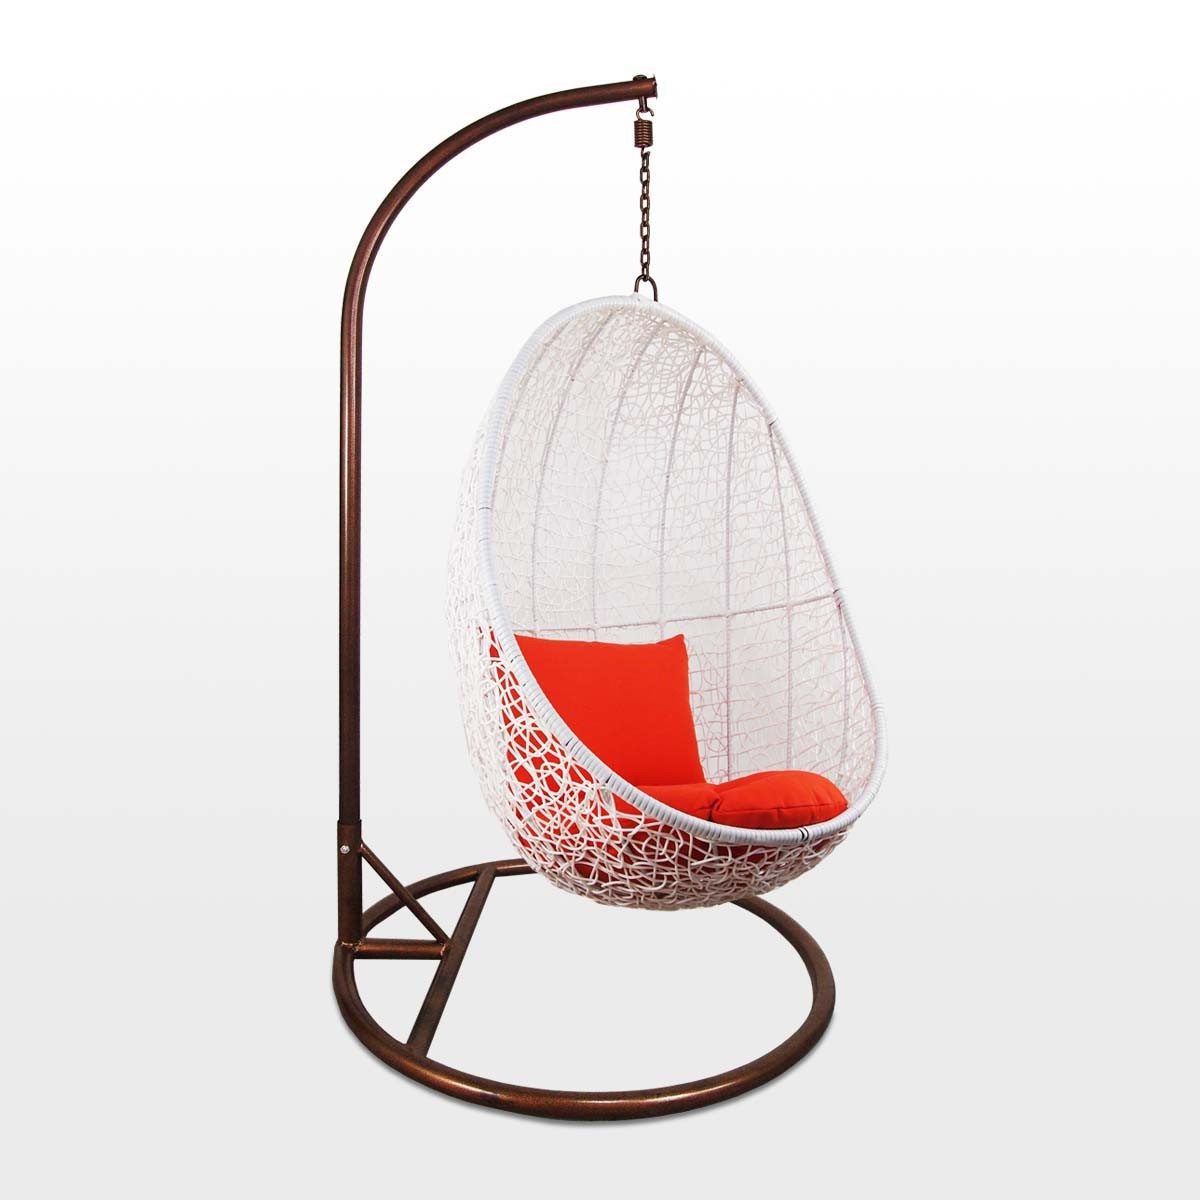 White Cocoon Swing Chair Orange Cushion Outdoor Garden